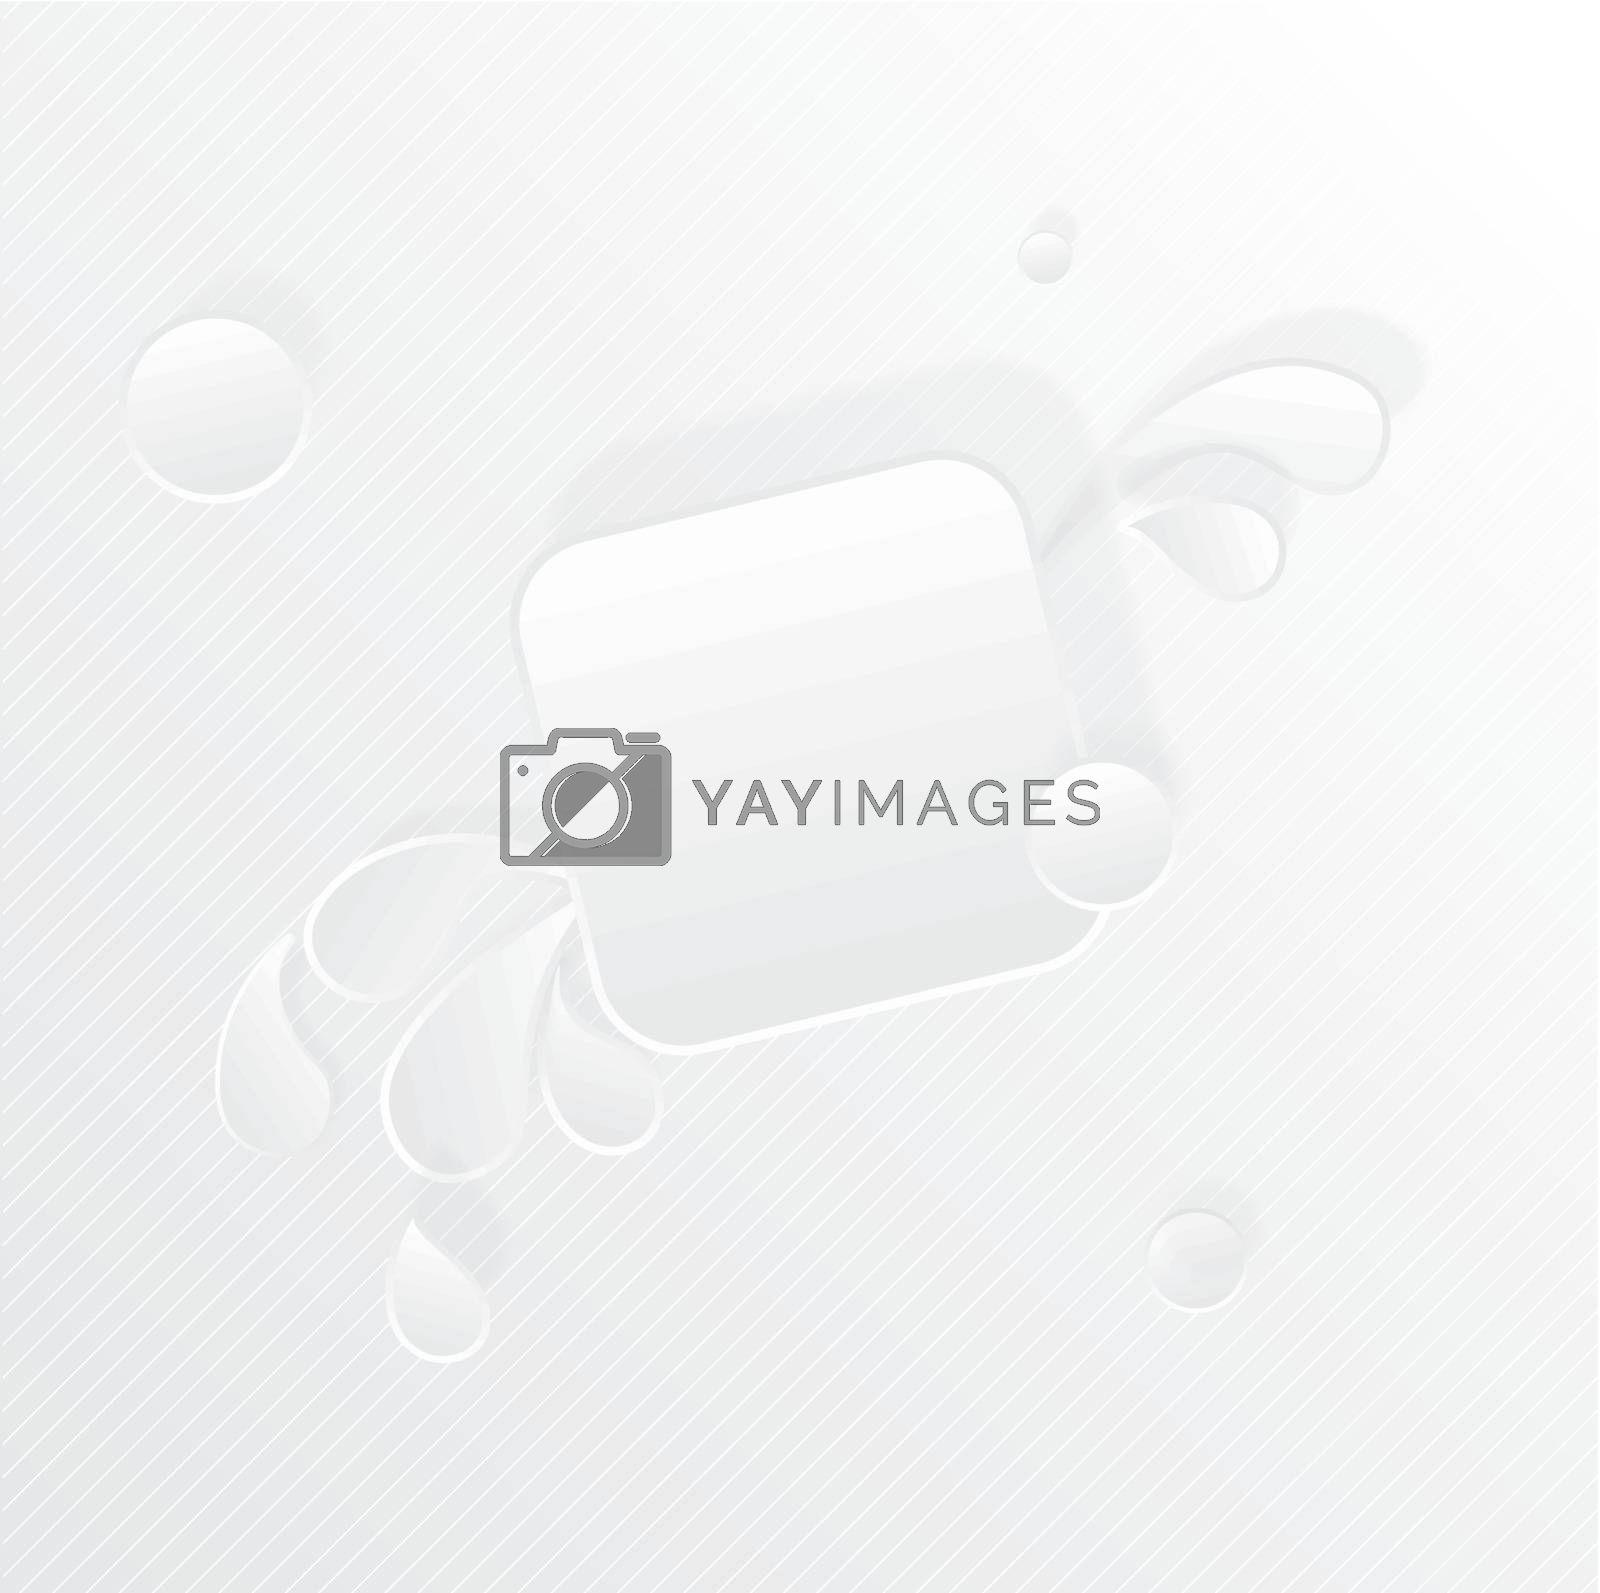 Paper square banner with drop shadows on white background. Vector illustration